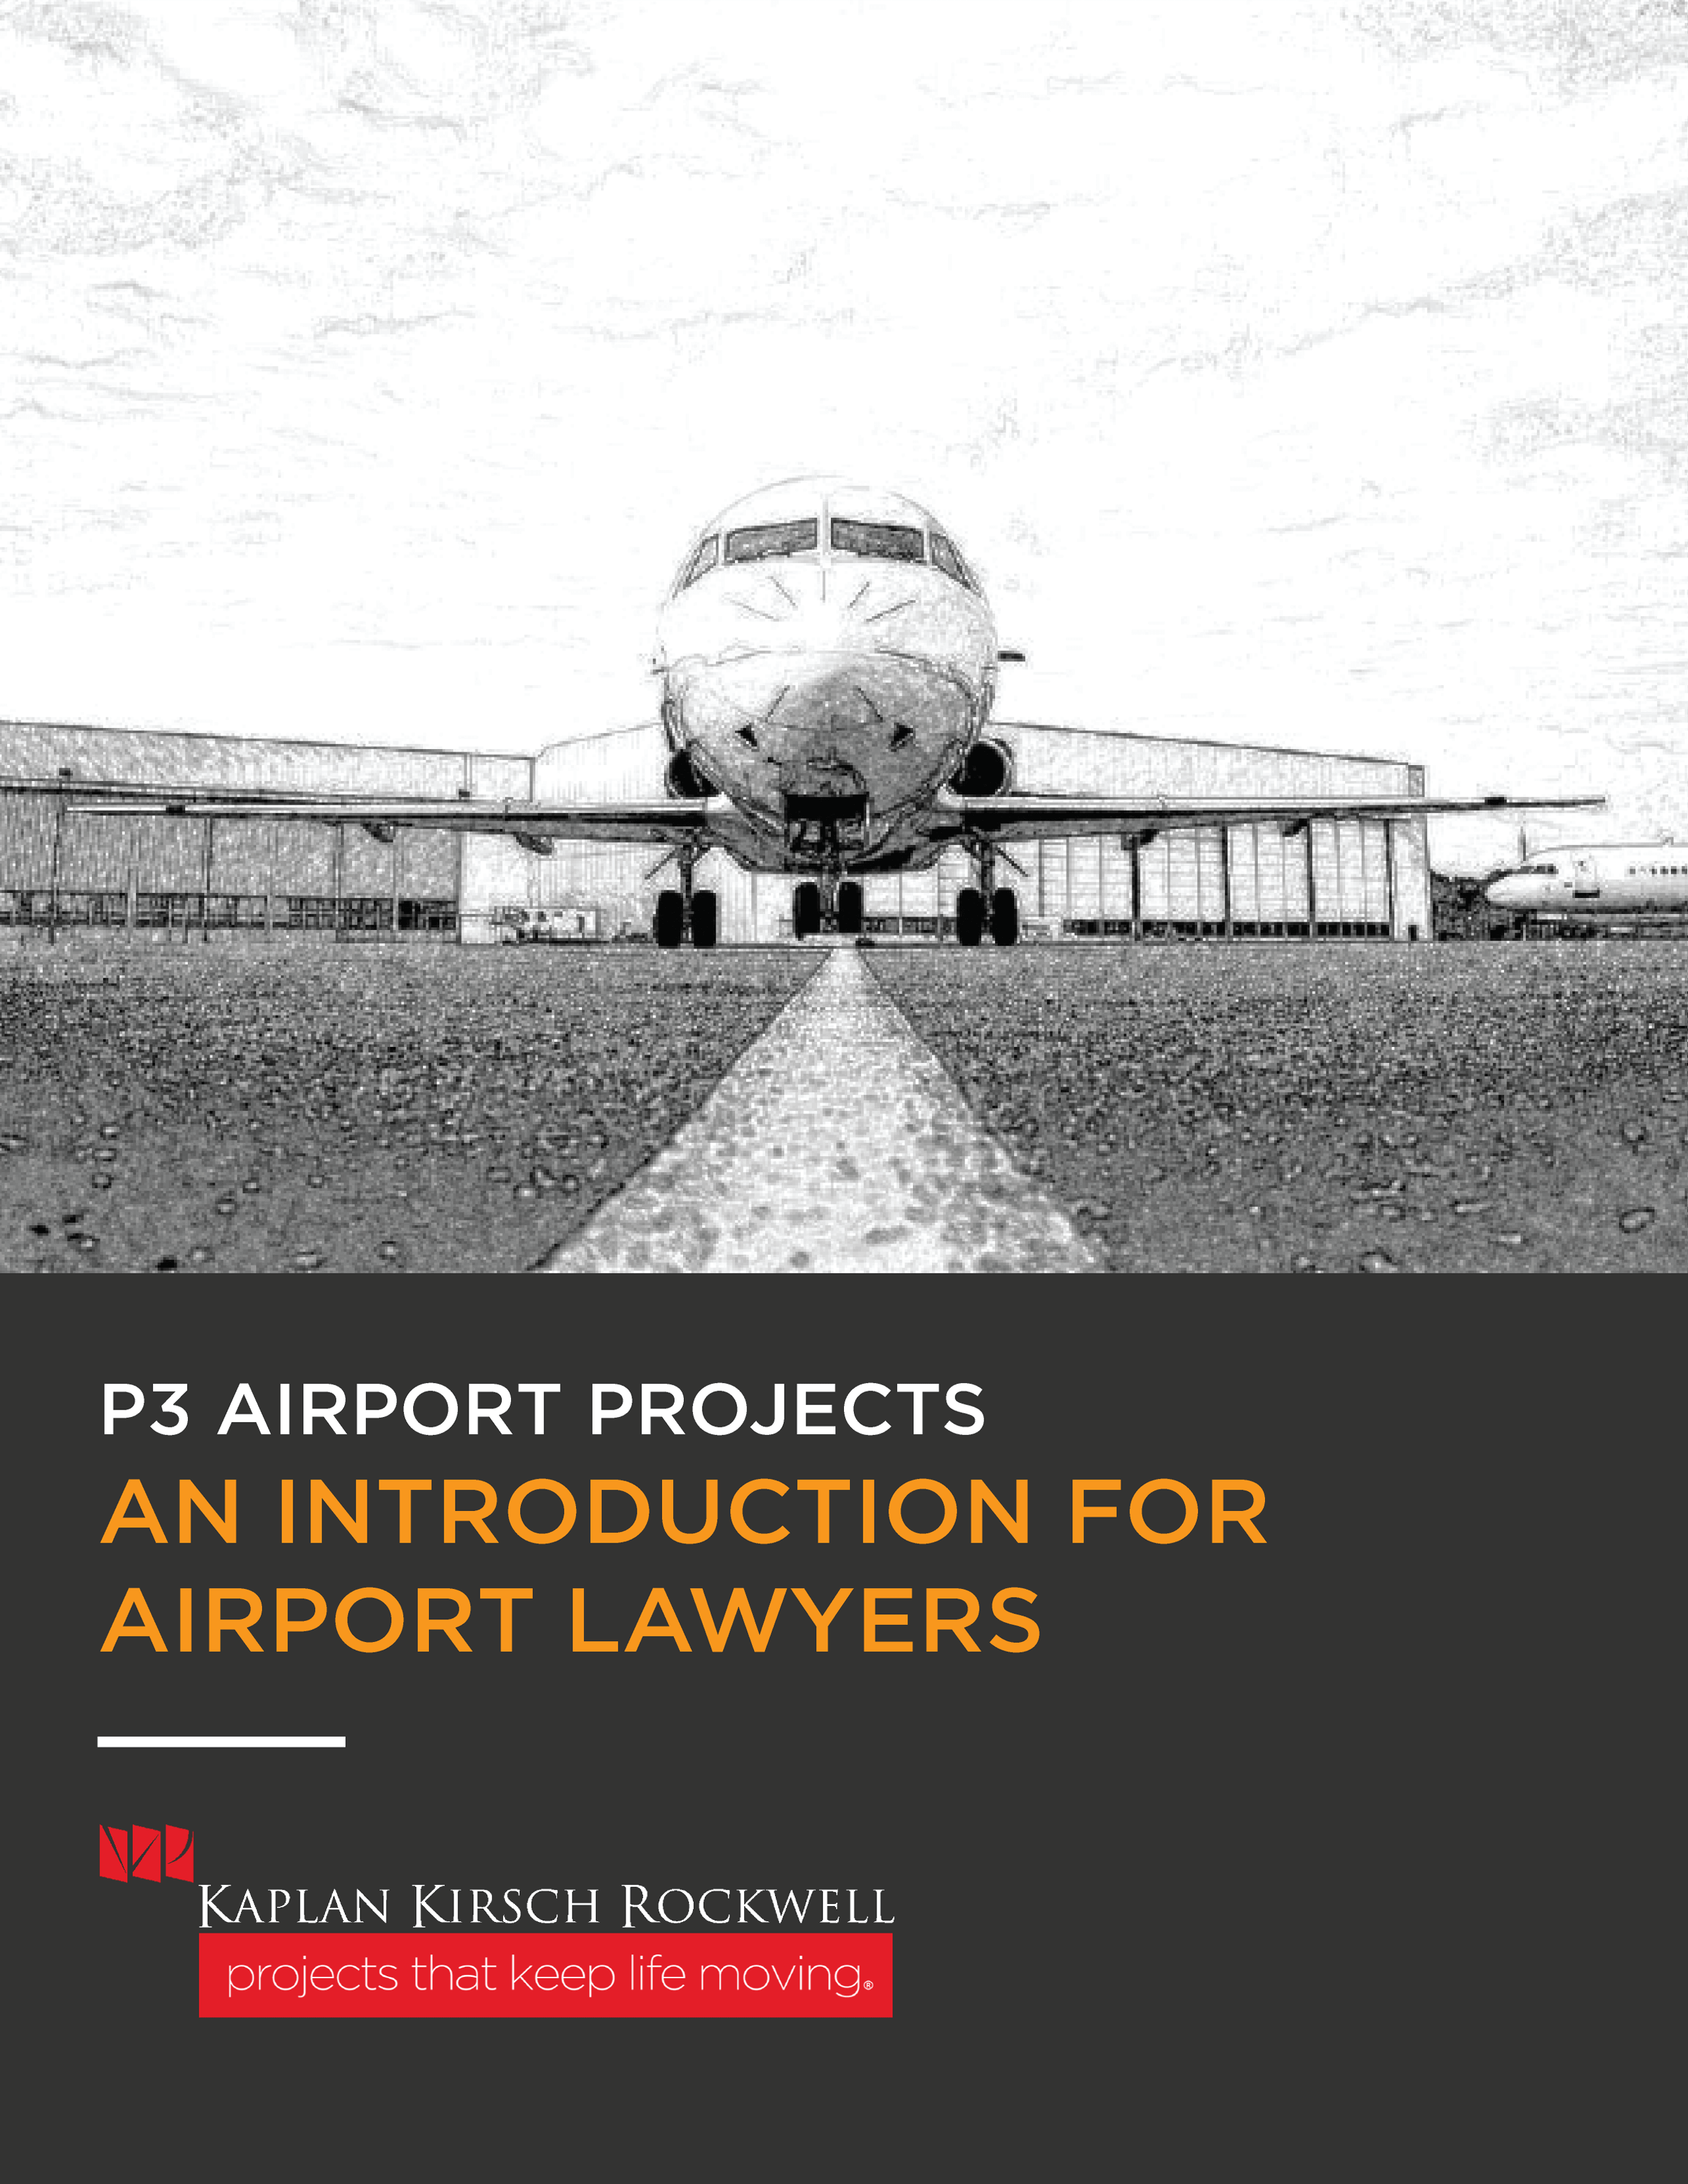 P3_Airport_Projects_An_Introduction_for_Airport_Lawyers